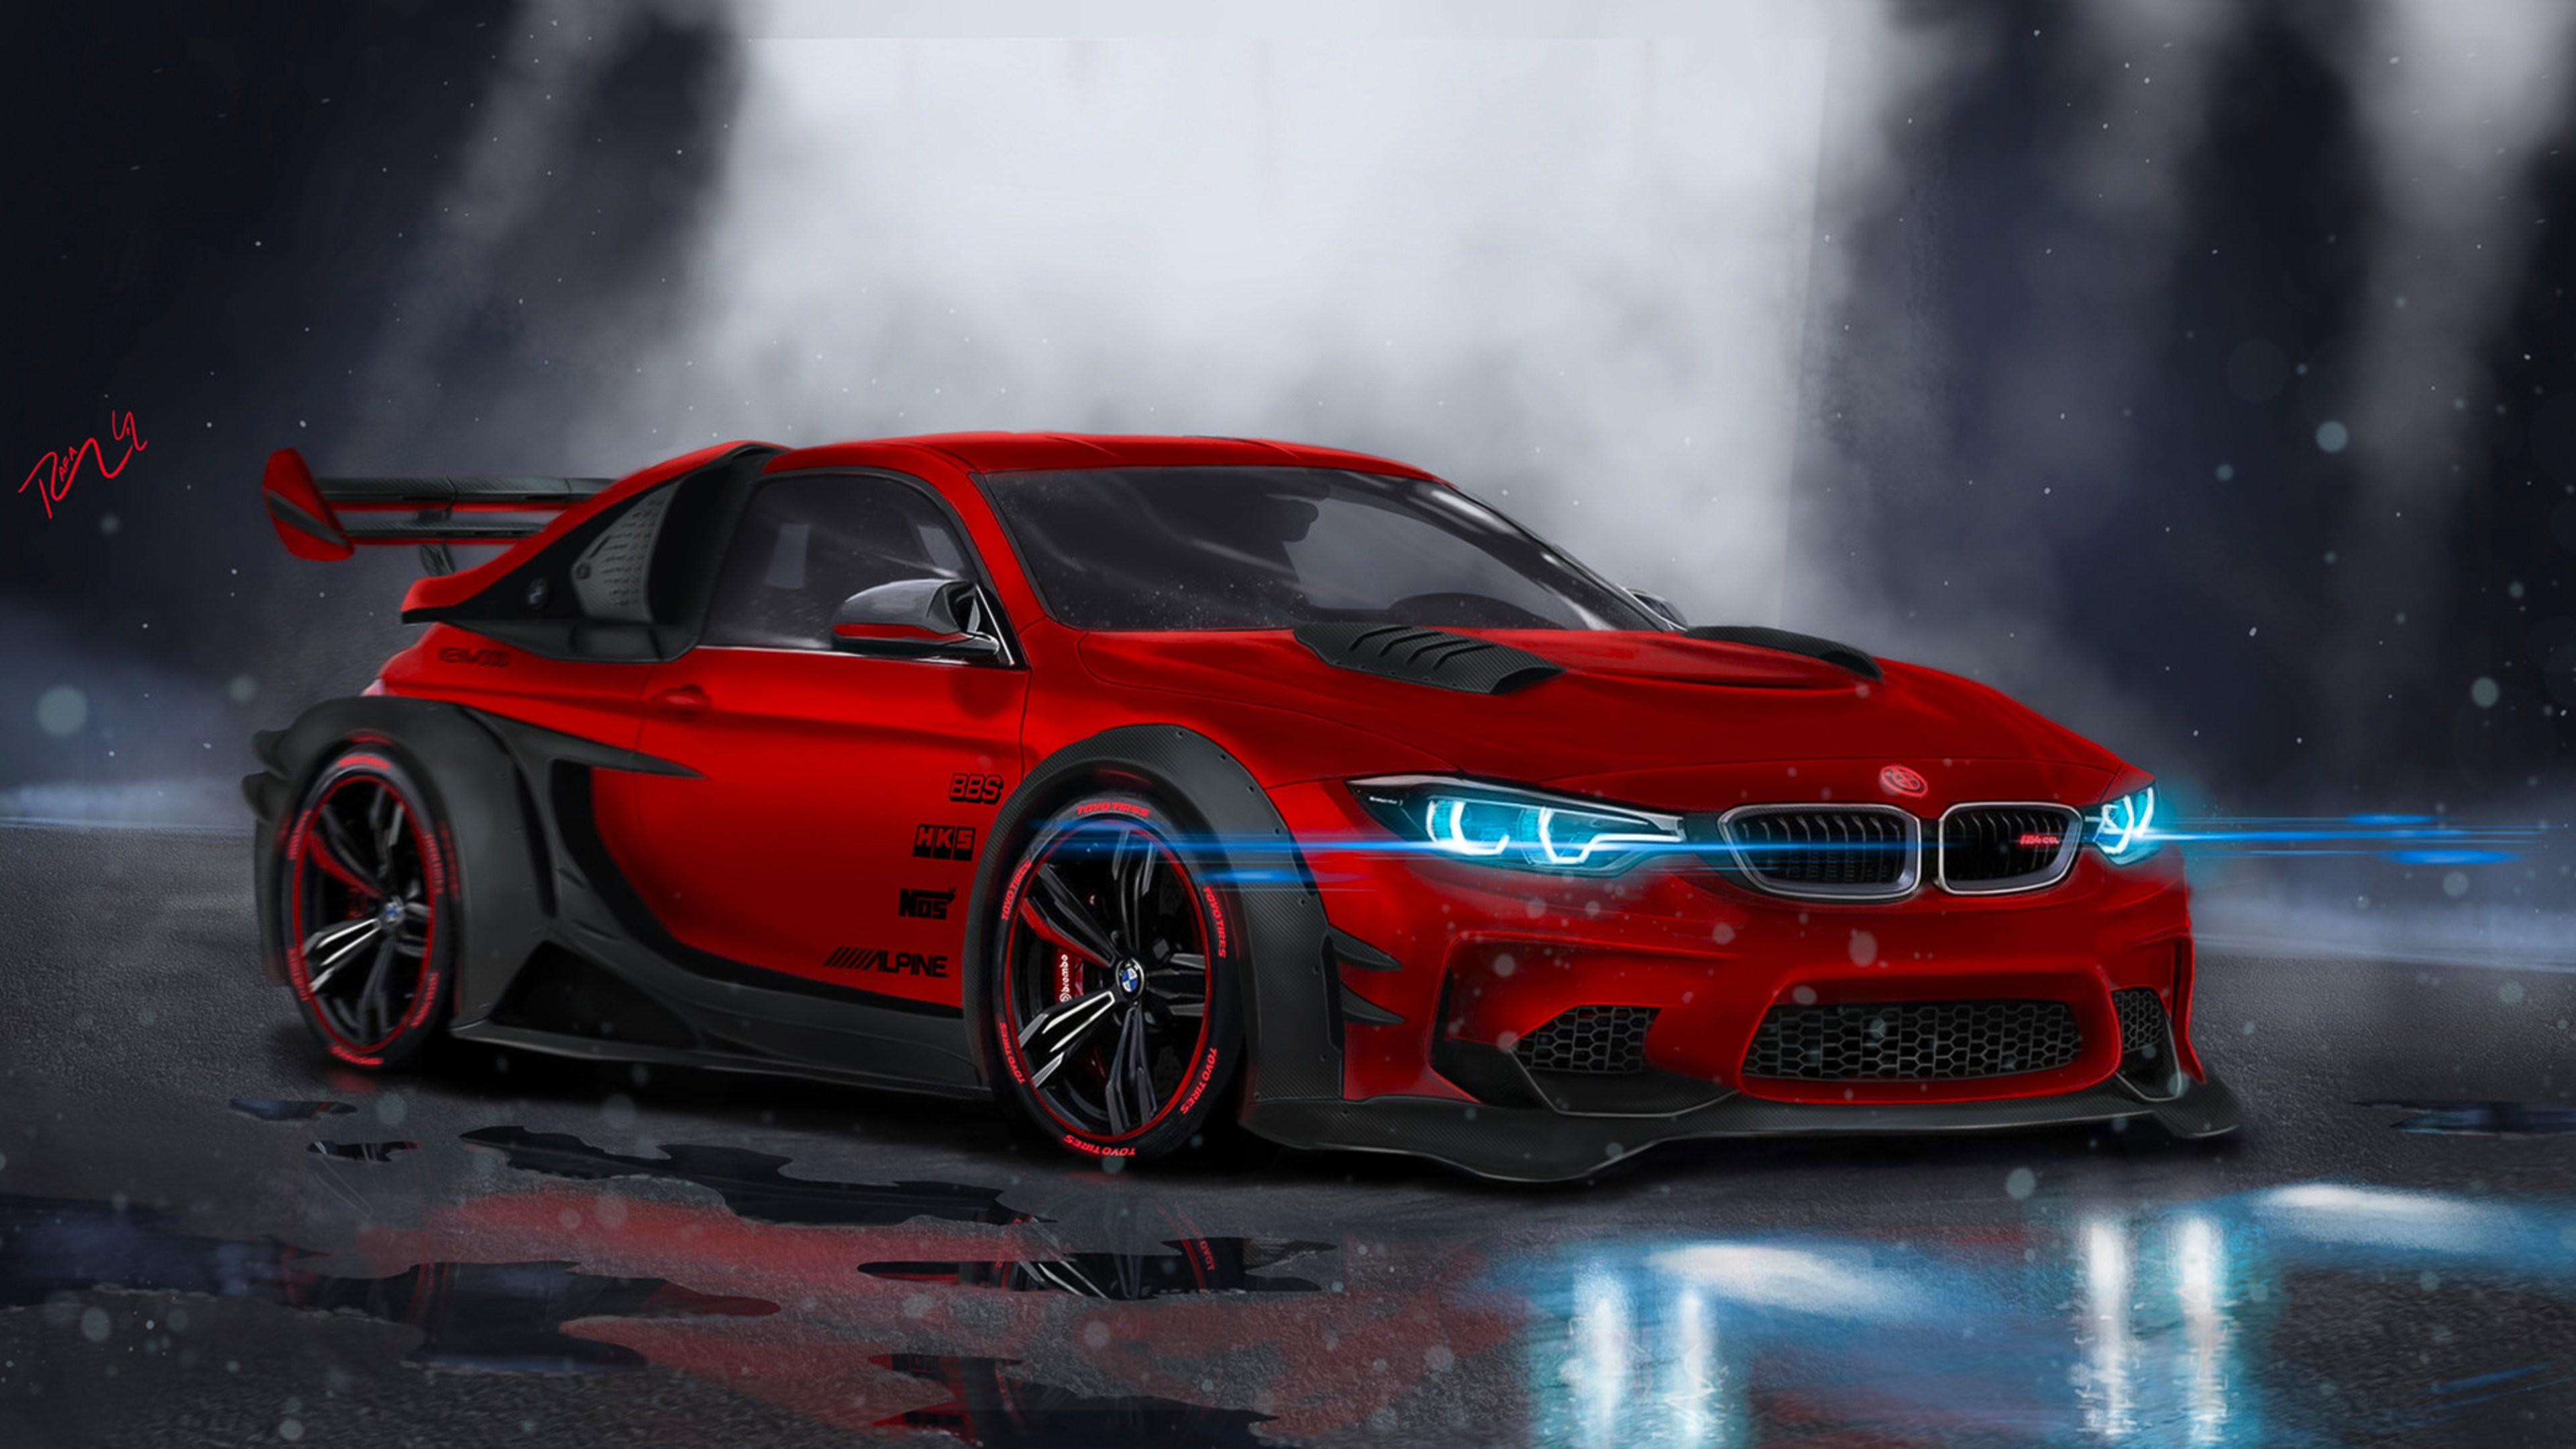 2560x1600 Tuned Cars Wallpapers Lovely Tuned Cars 838590 Walldevil